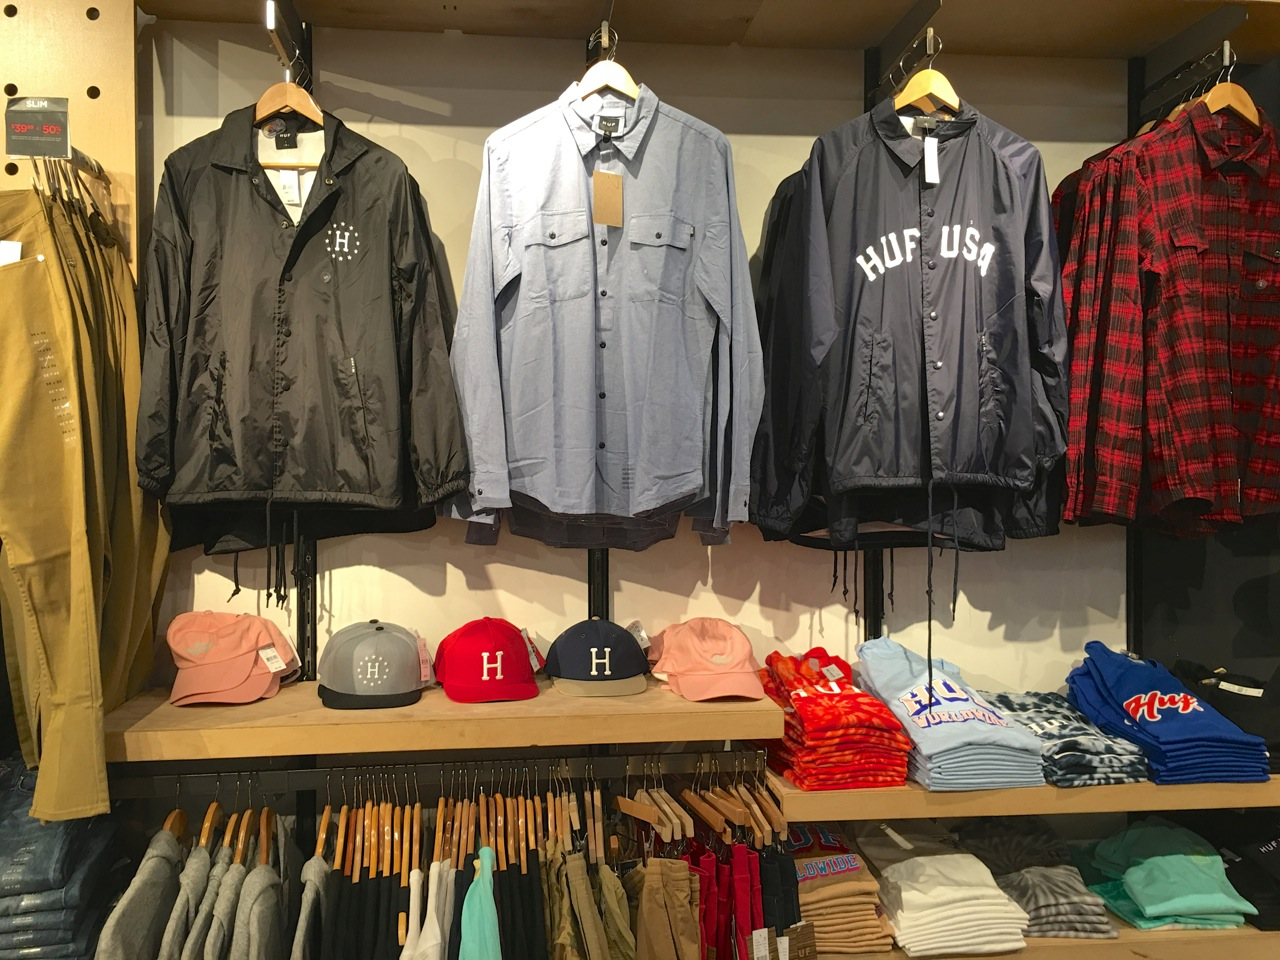 Huf in stores - SES file photo